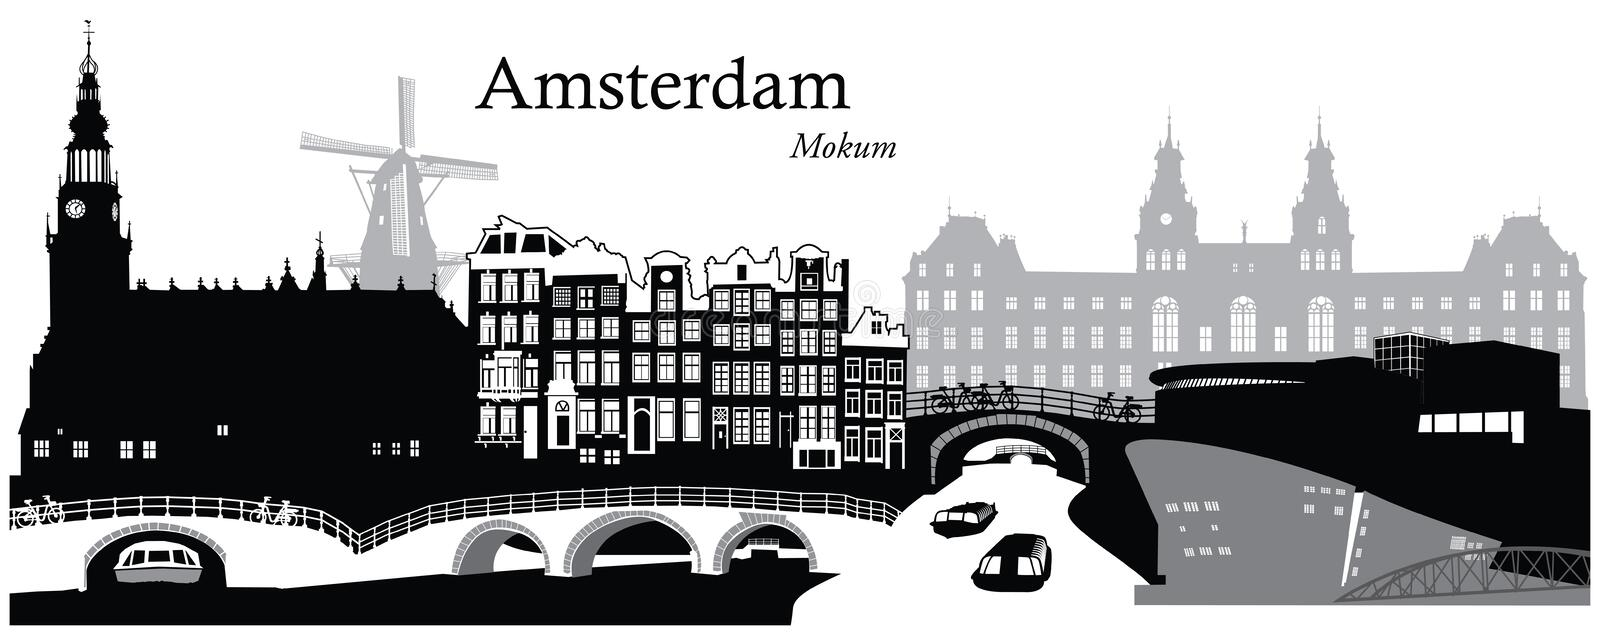 Amsterdam Cityscape. Vector illustration of the cityscape skyline of Amsterdam, Netherlands stock illustration